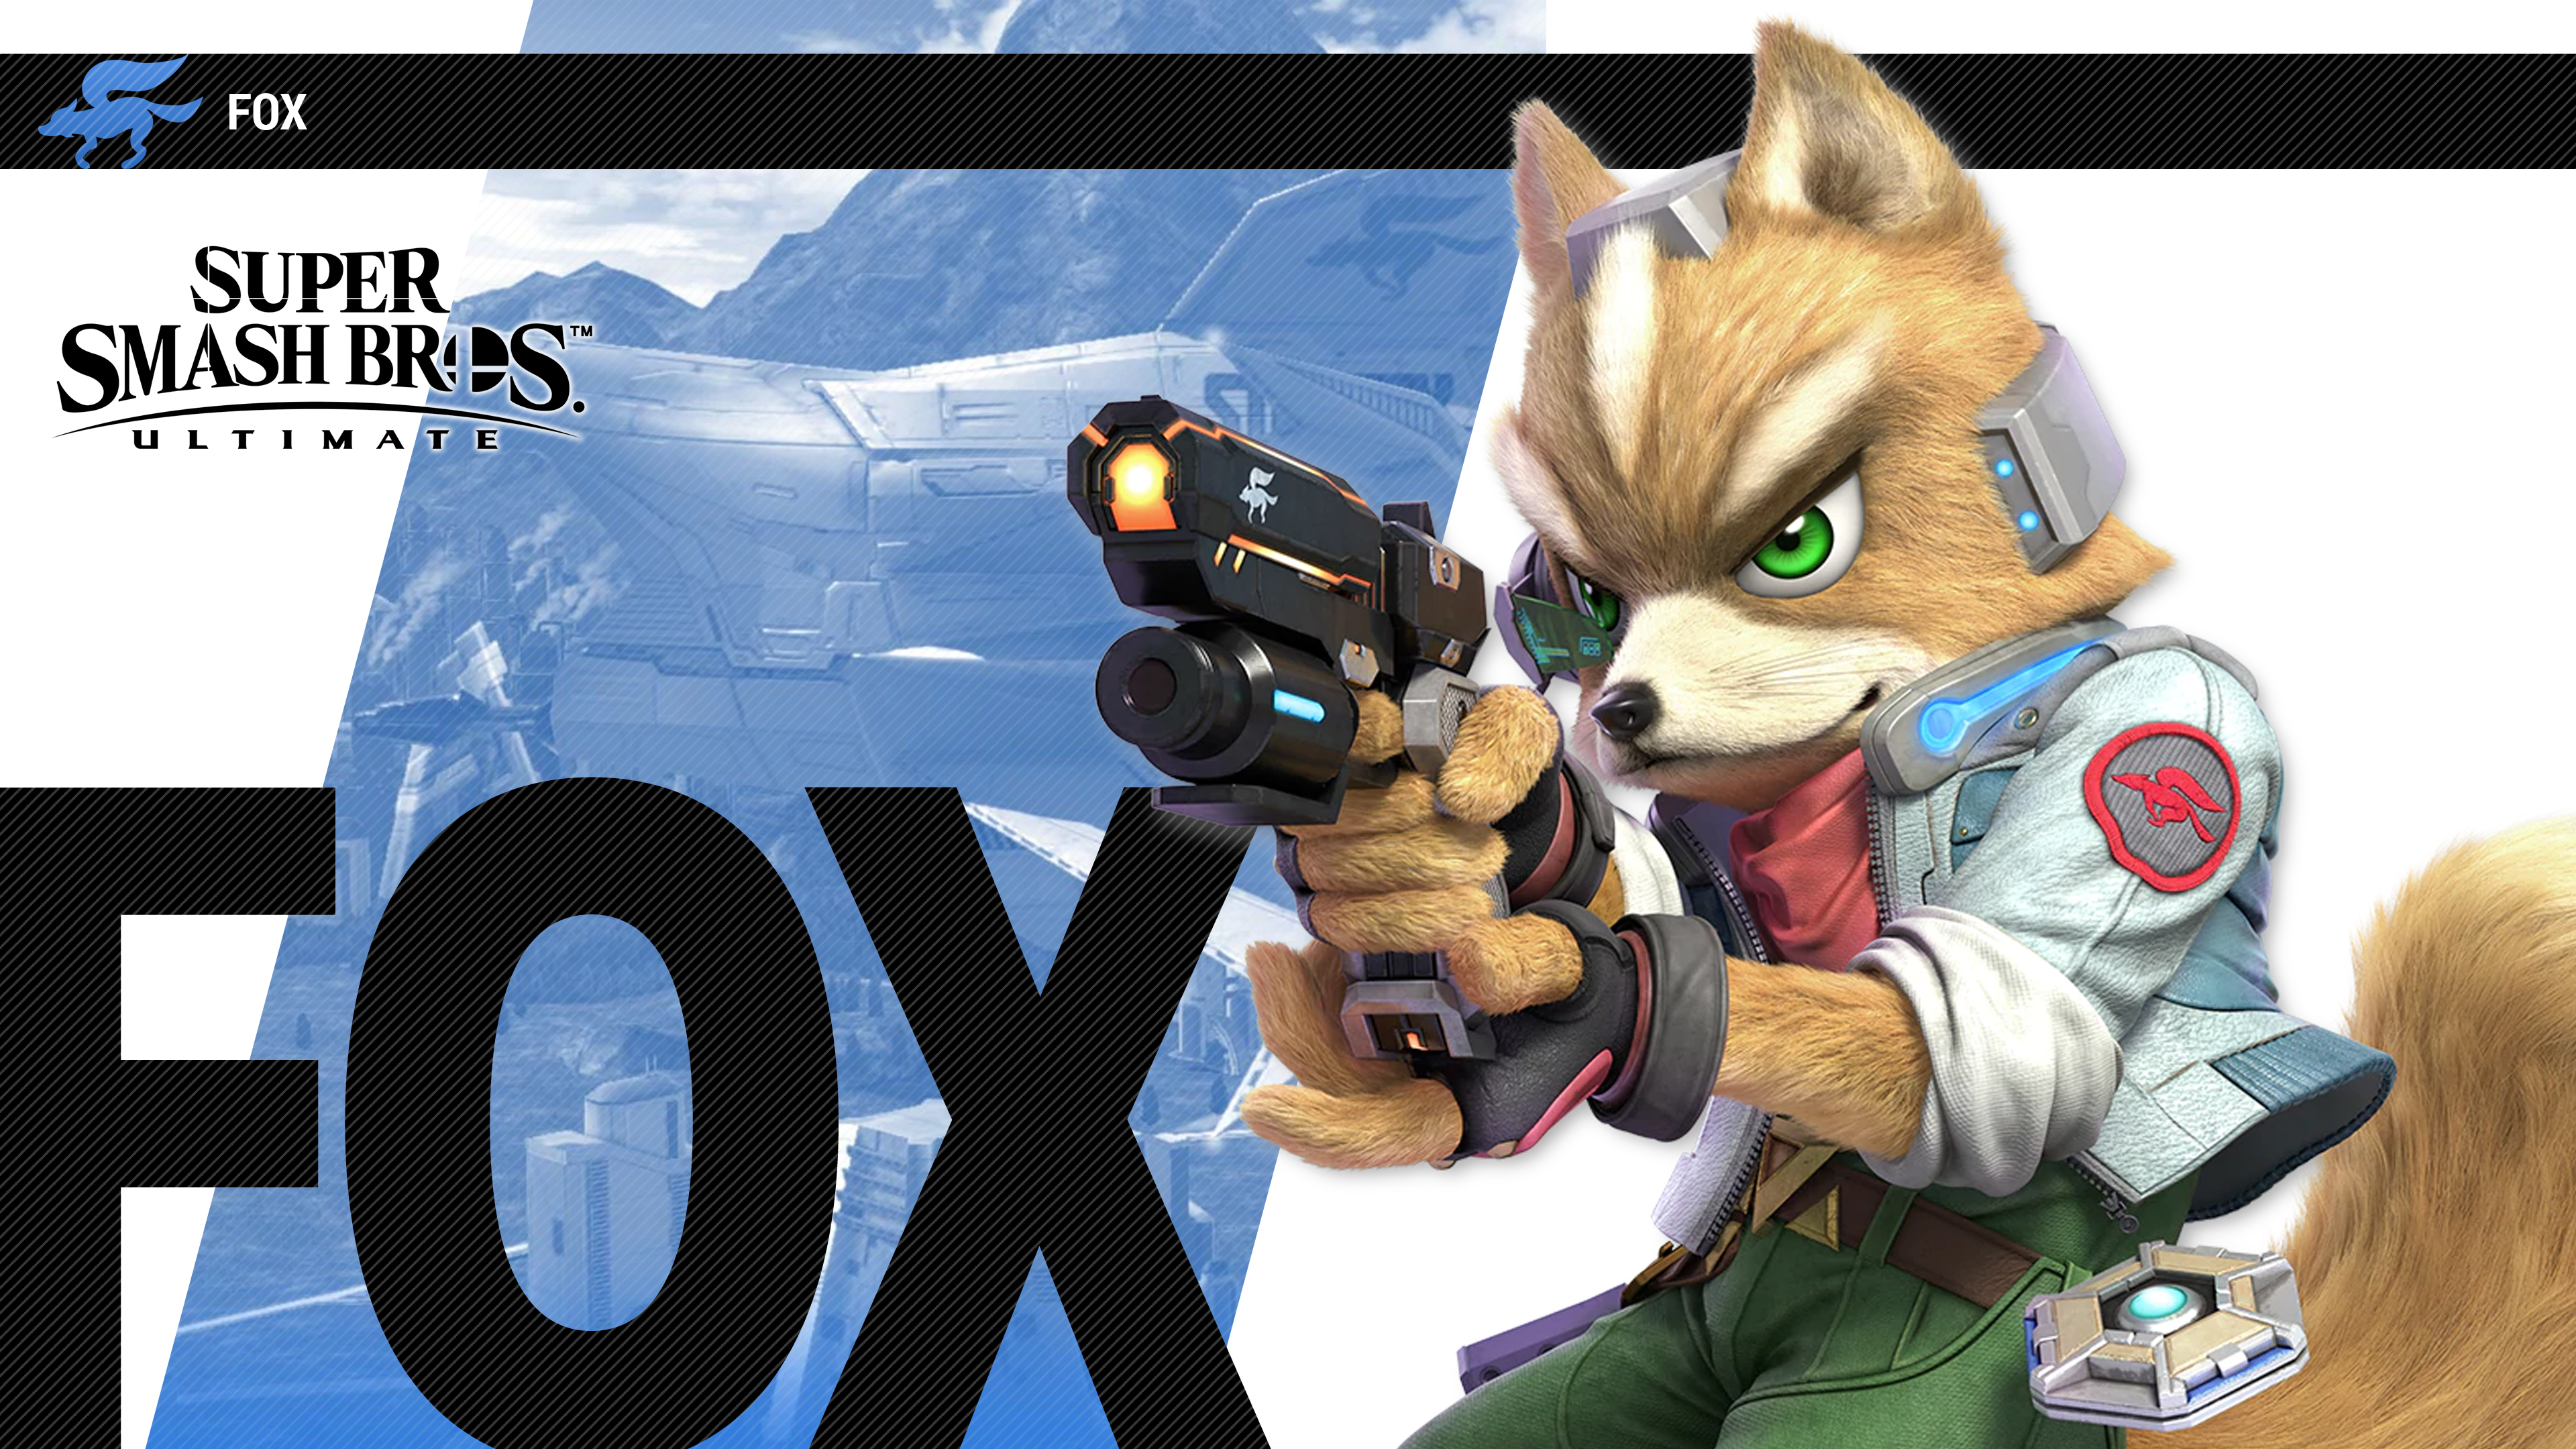 super smash bros ultimate fox wallpapers cat with monocle